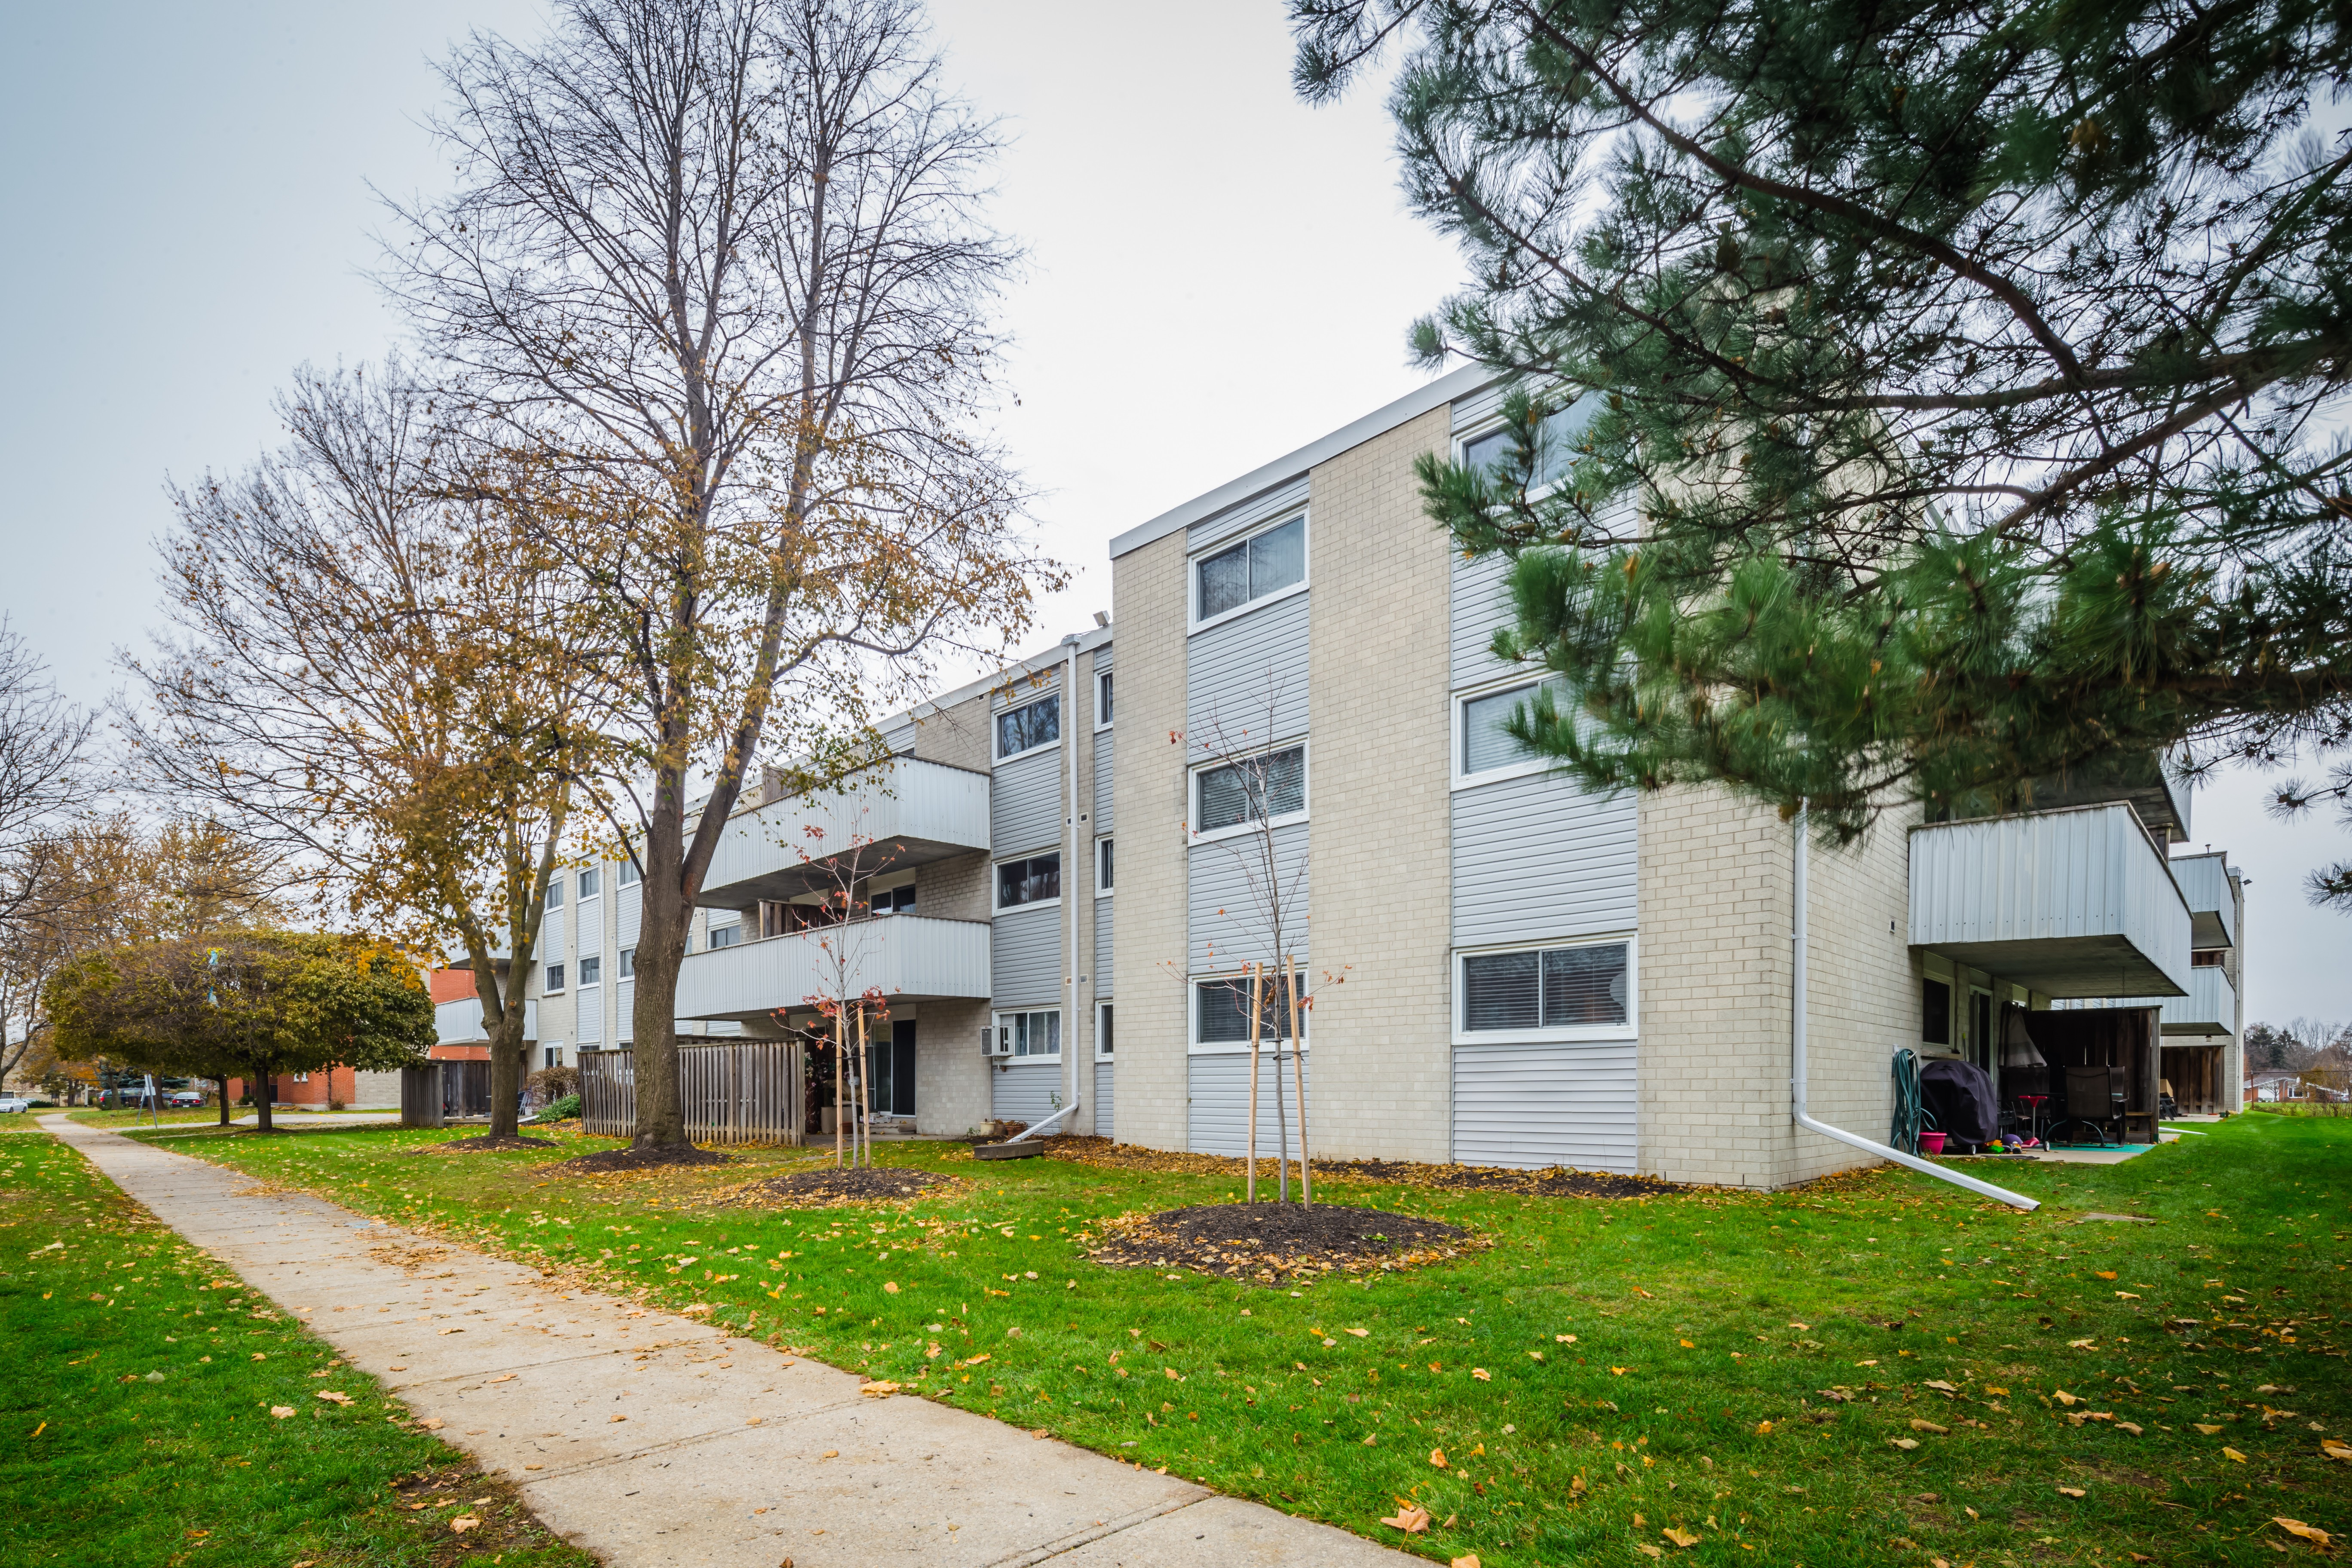 80 Breckenridge Condos at 80 Breckenridge Dr, Kitchener 0